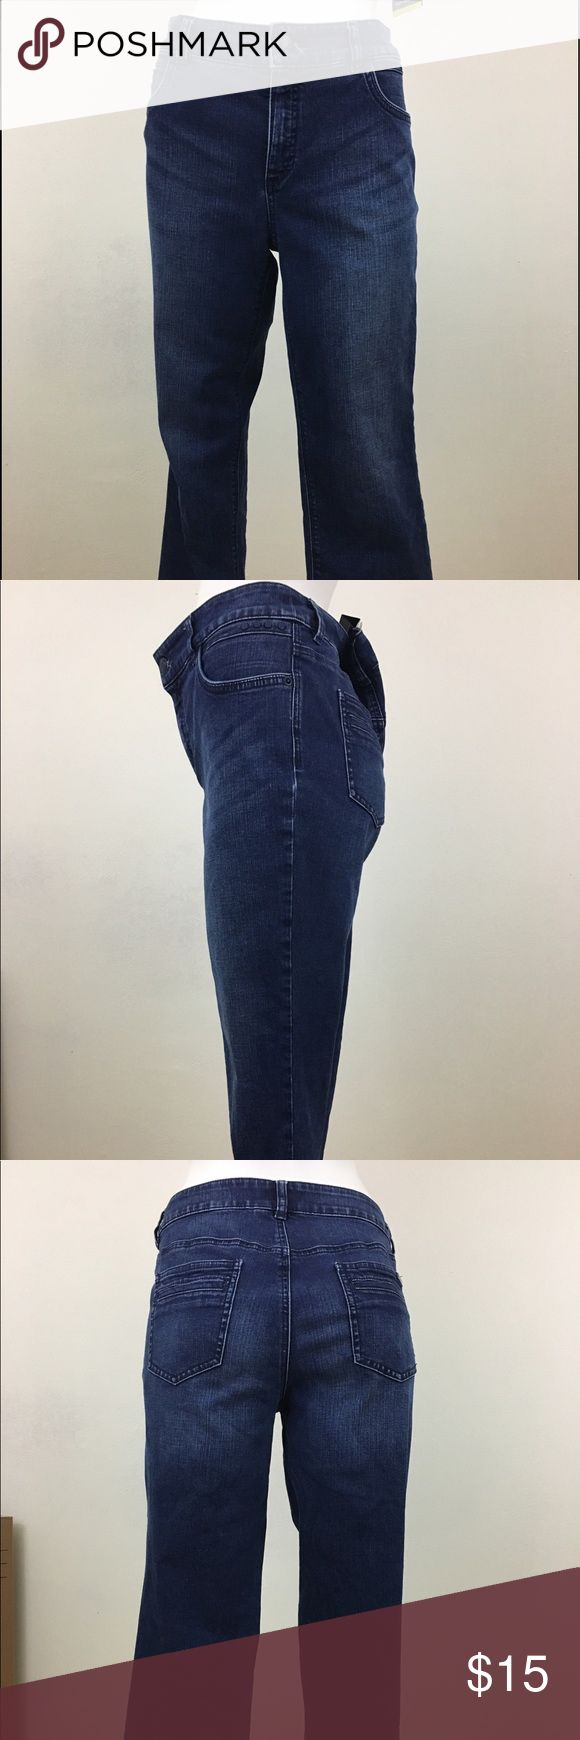 """Ladies So Slimming By Chico's Denim Jeans Women's/Ladies So Slimming By Chico's Denim Jeans, Chico Size 1 Regular, Blue  Material: 72% Cotton, 14% polyester, 13% rayon, 1% Spandex Waist approx. from side seam to side seam: 17"""" Inseam approx.: 23"""" Chico's Jeans Straight Leg"""